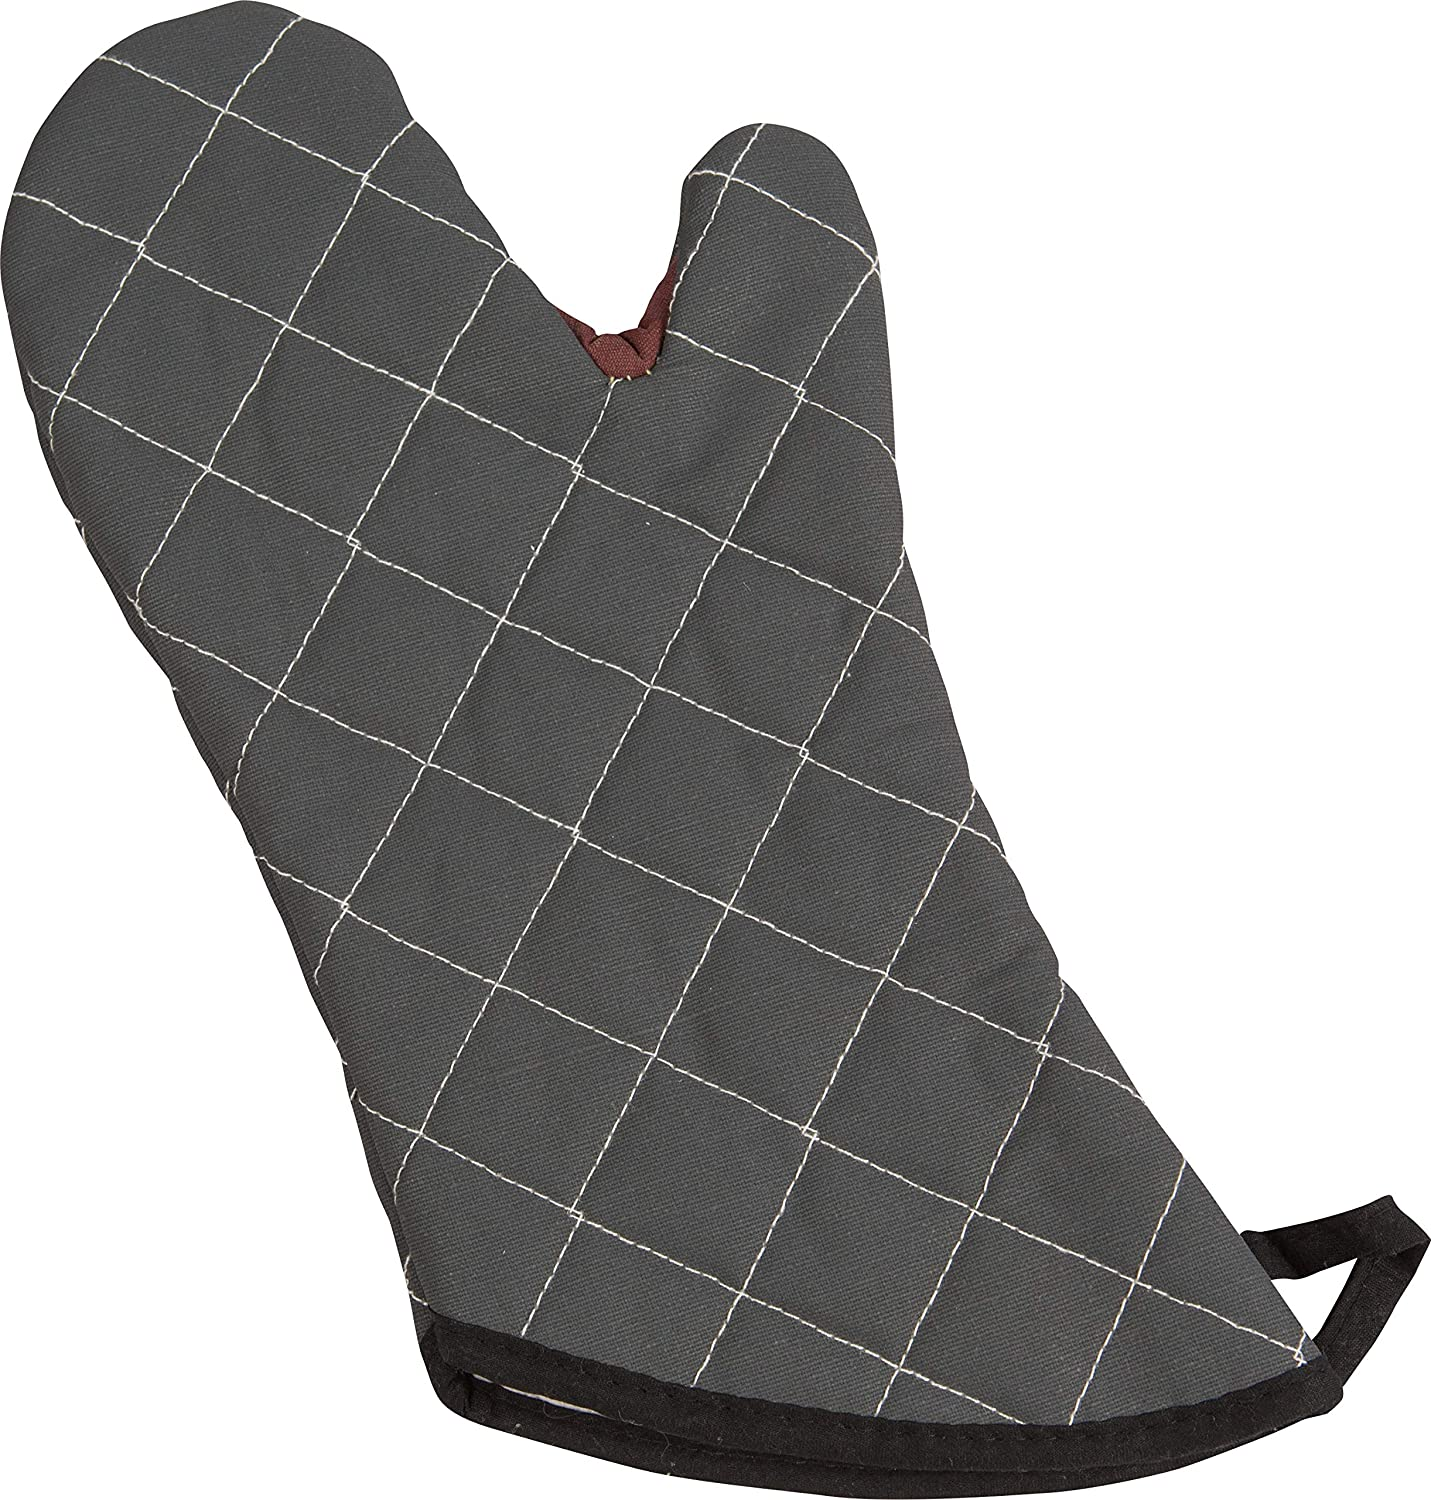 "San Jamar 800FG15-BK BestGuard Commercial Heat Protection Up to 450° F Oven Mitts (Pair), 15"" Length, Black"